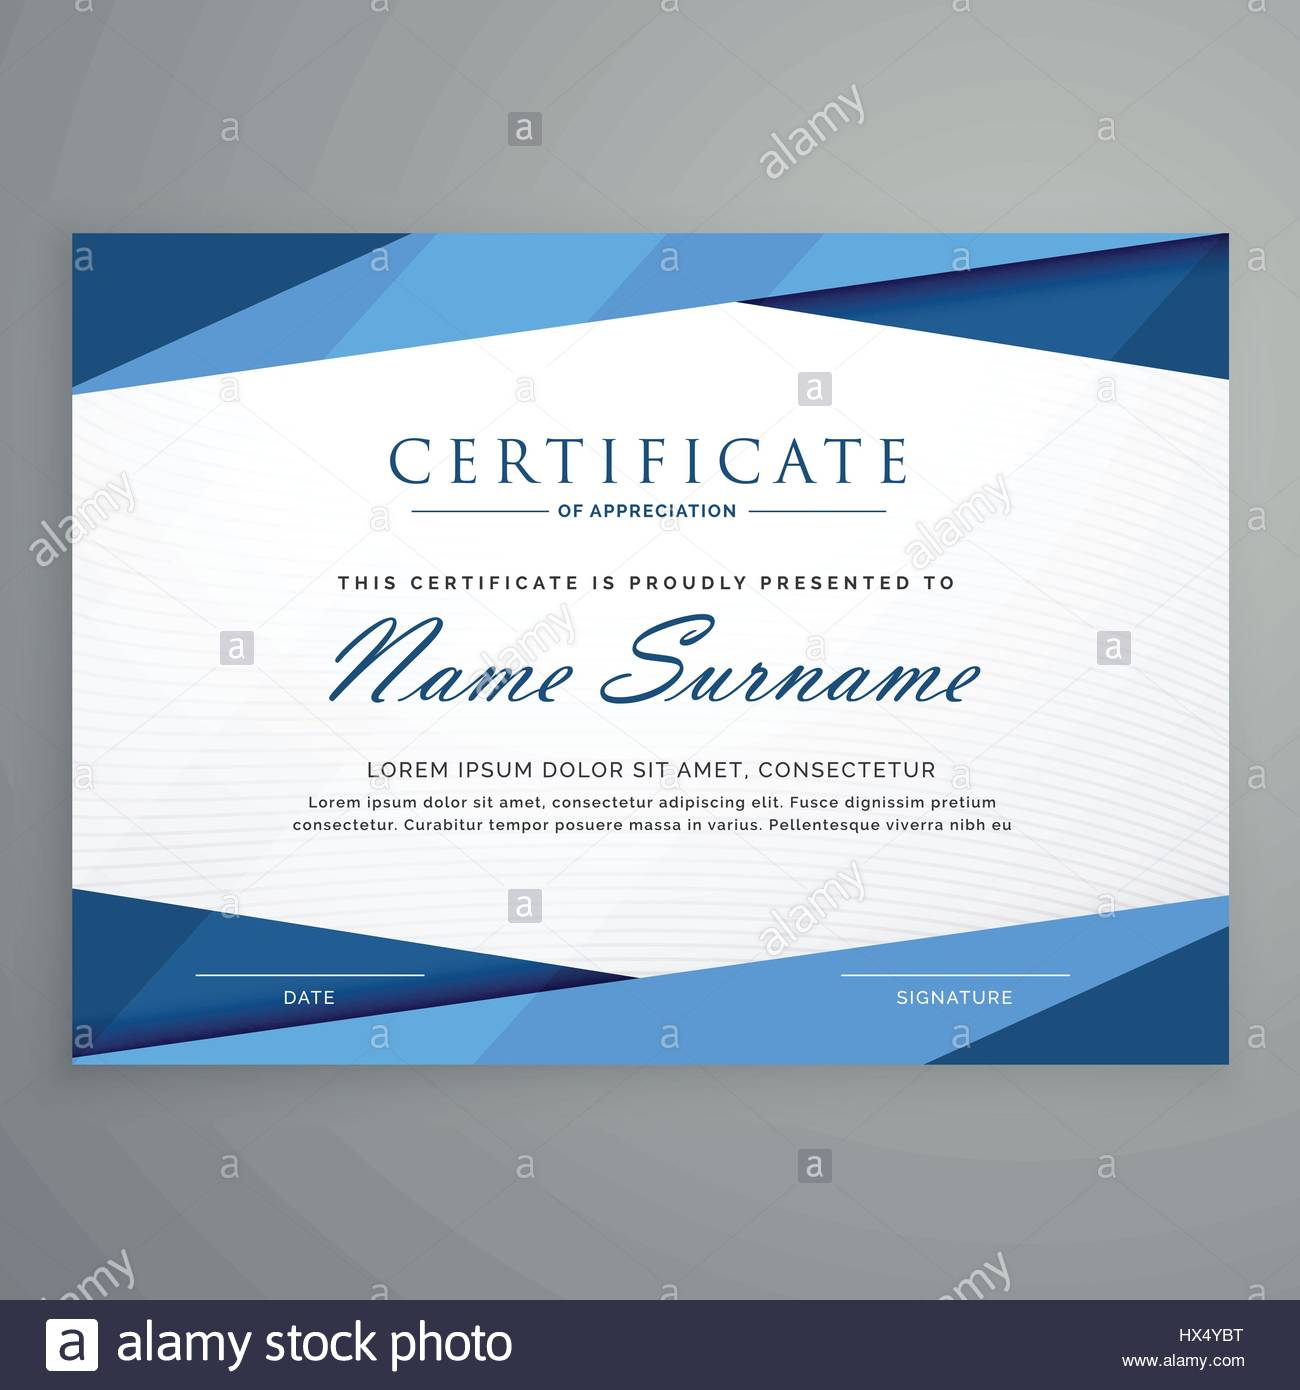 Qualification Certificate Template Stockfotos & Qualification ...